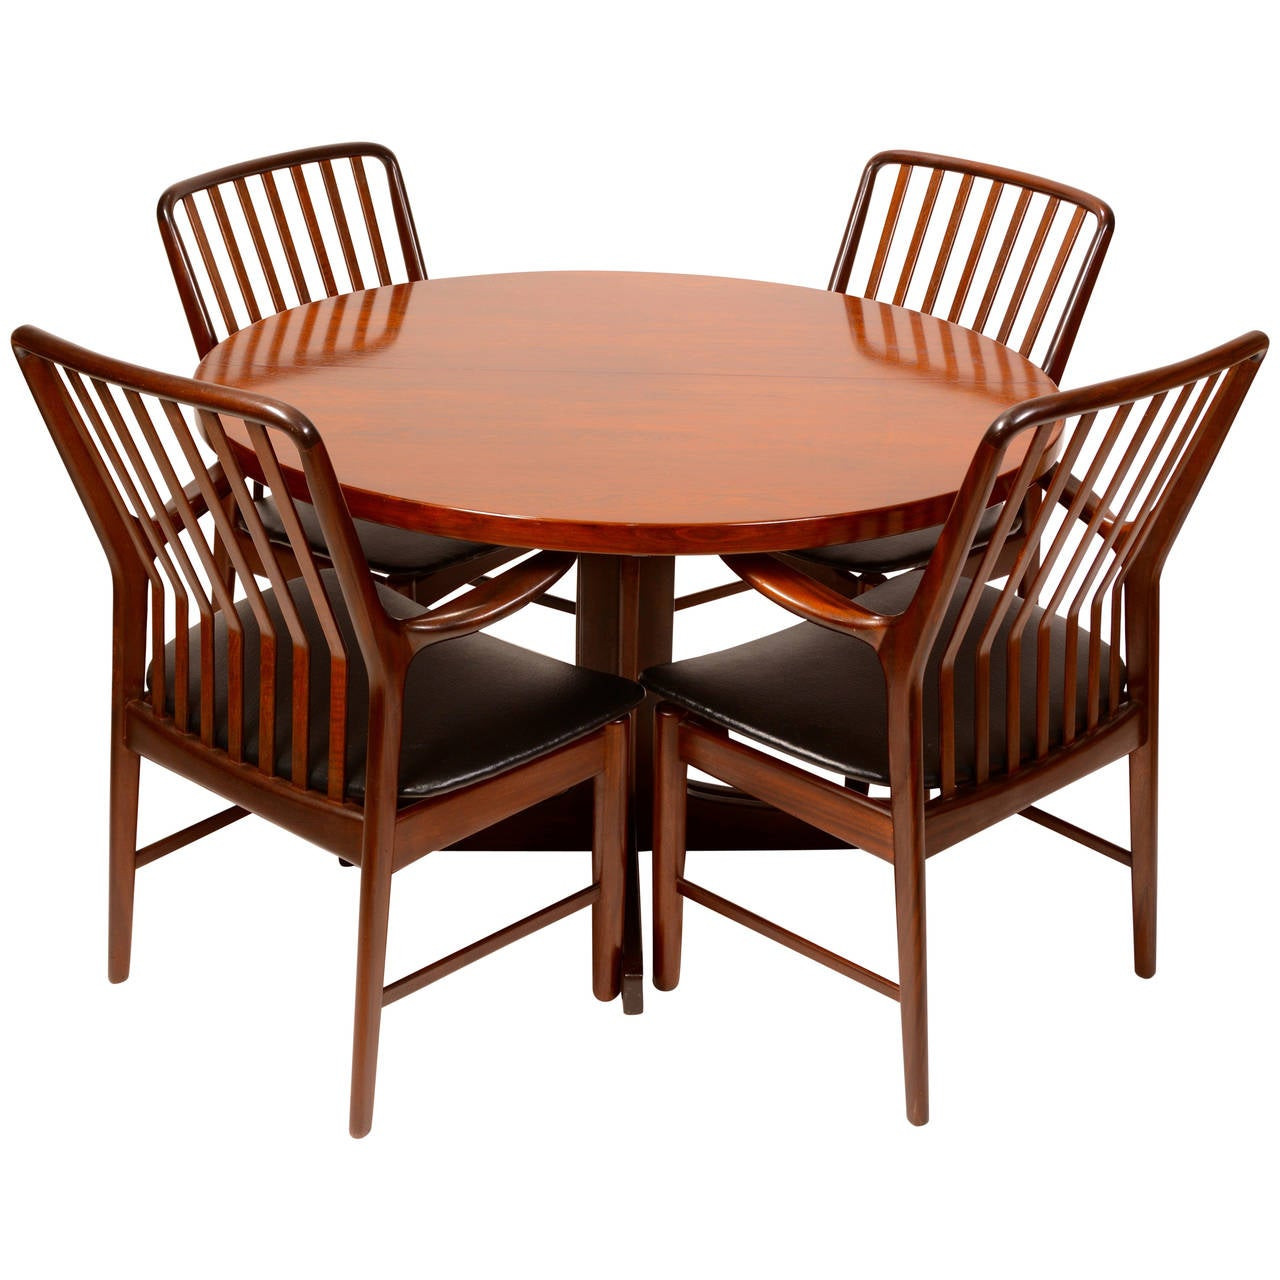 Best ideas about Mid Century Modern Dining Table . Save or Pin Mid Century Modern Skovmand and Andersen for Moreddi Now.